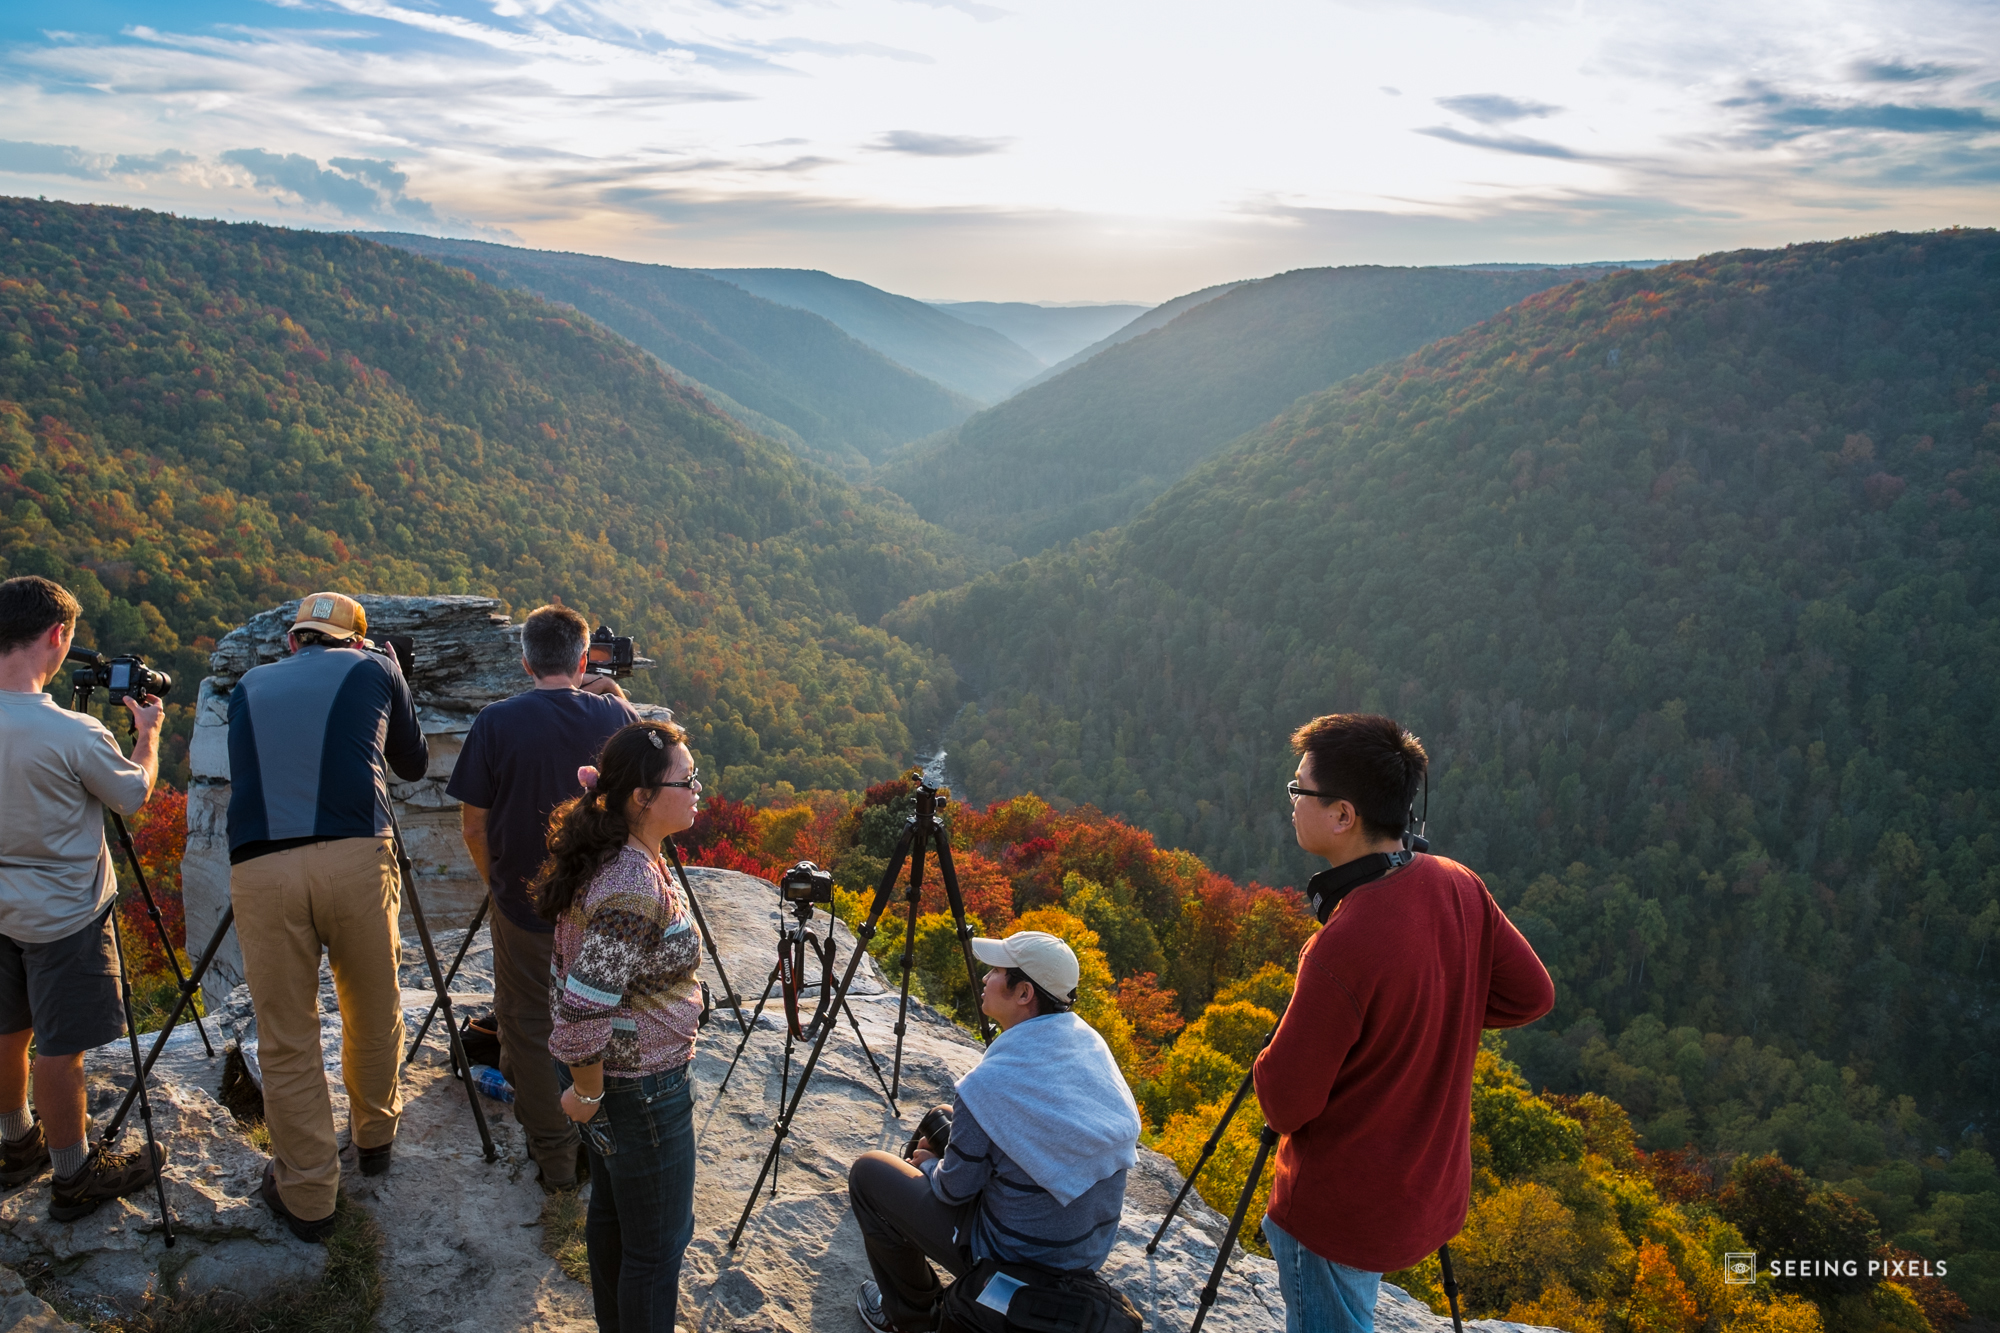 """Photographers waiting for the """"Big One"""". The wait for sunset, everyone patiently looking onward into the valley to see what the light has in store."""